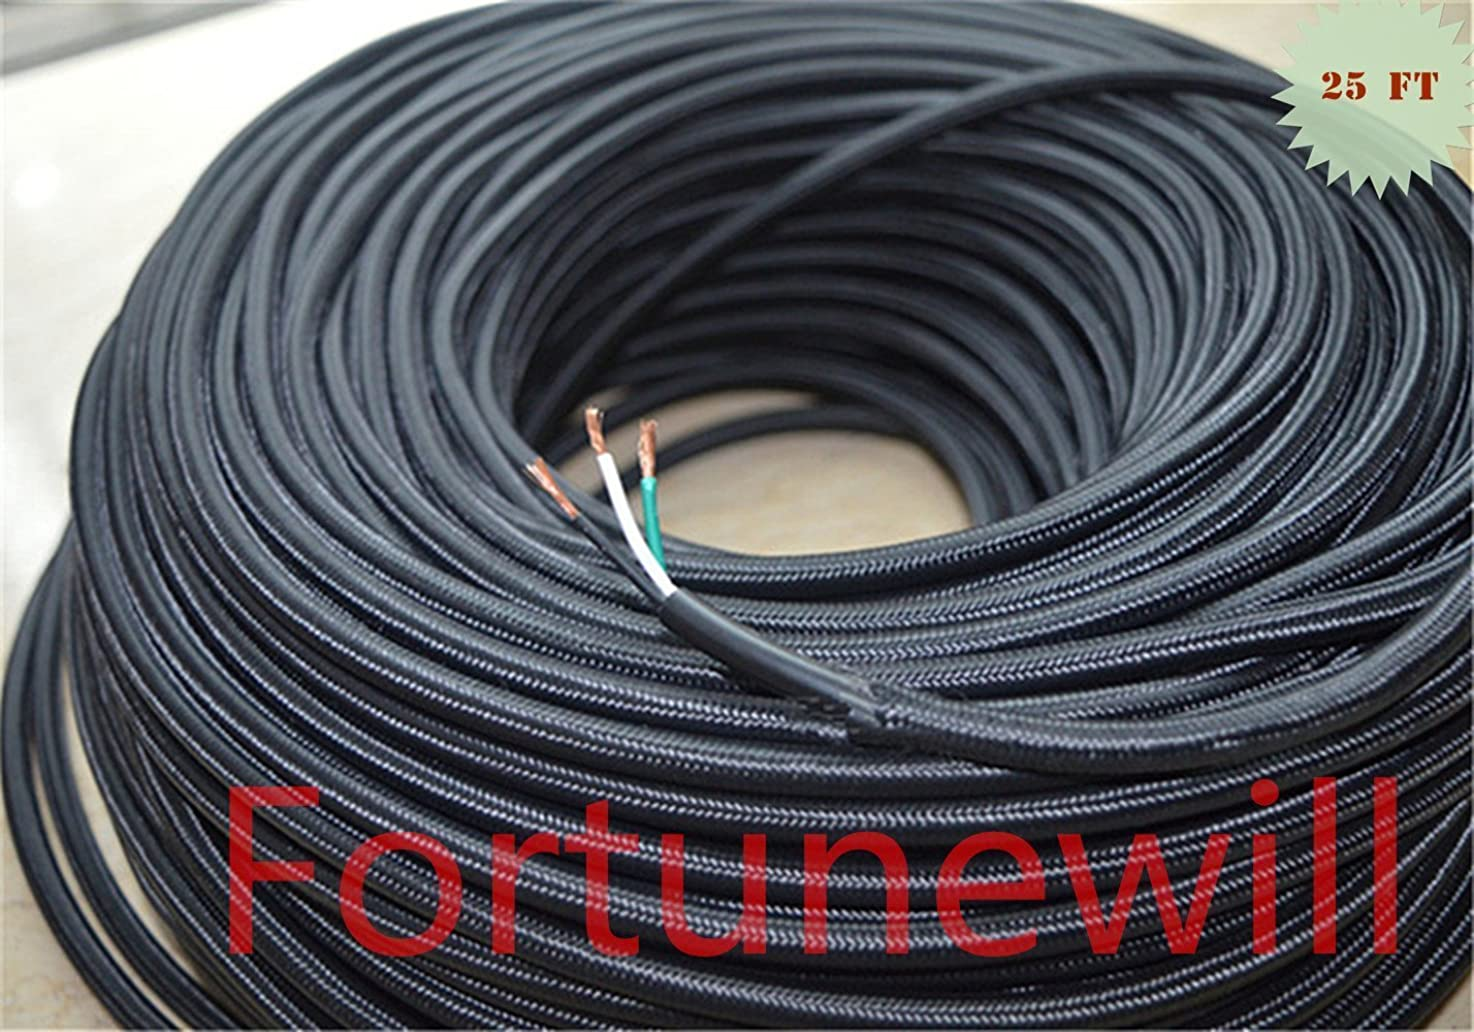 Fortunewill 25 ft 3-wire Black Cloth Covered 3-Wire Round Cord. Vintage Lamps Lights, rayon